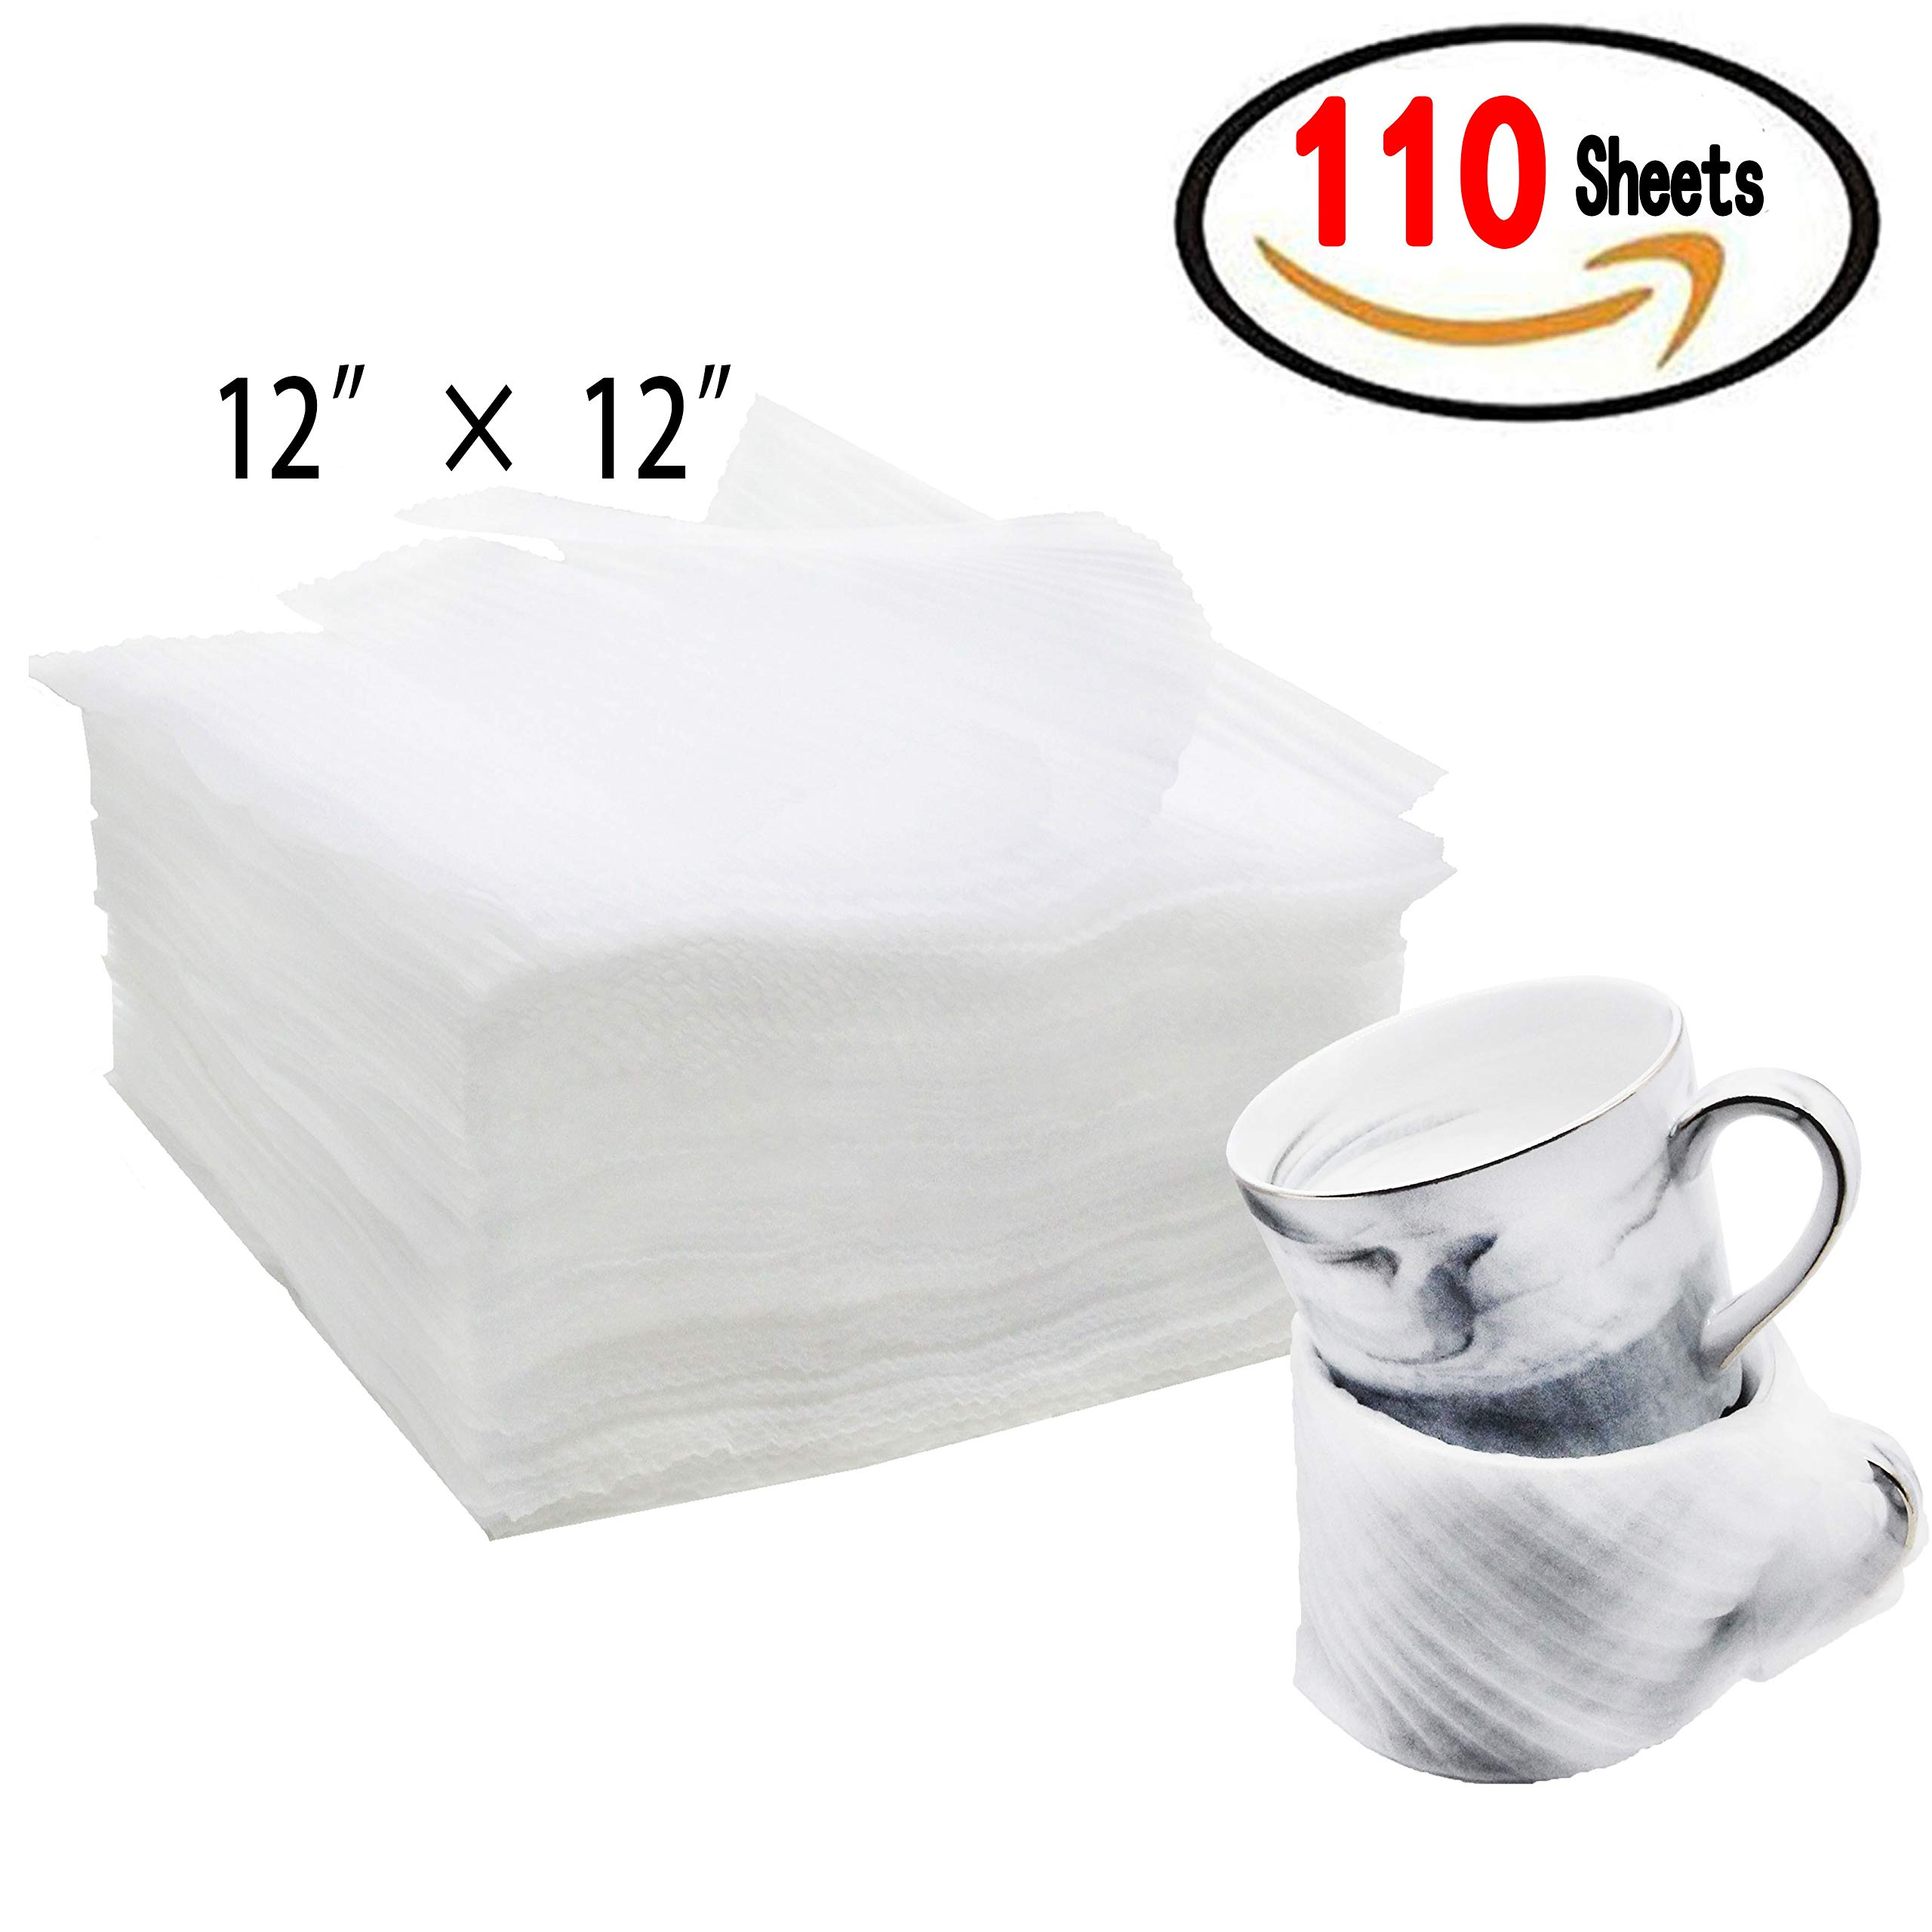 Cushioning Foam Sheets, Moving Supplies/Storage, Shipping/Packing Foam, Foam Moving Sheets, Foam Wrap Sheets, Kitchen Packing Supplies/Wrap/Sleeves, Packing Supplies/Material for Dishes and Glasses